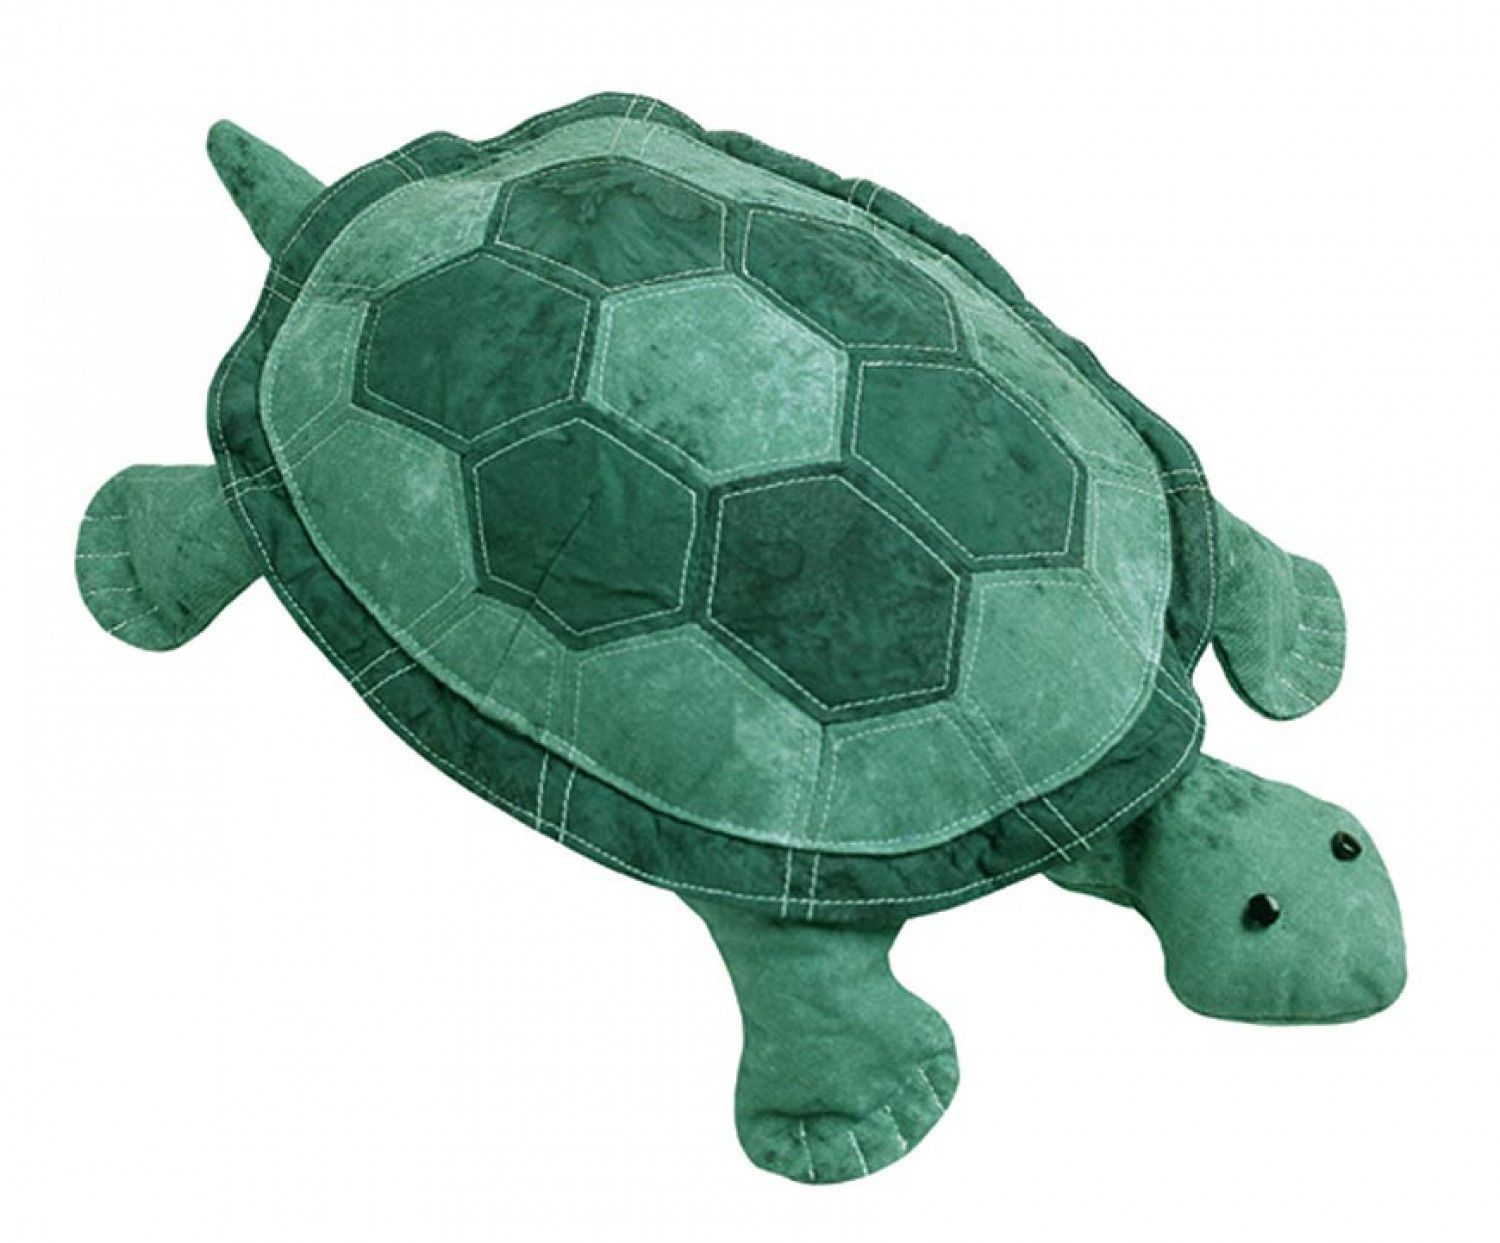 TURTLE STUFFED ANIMAL QUILTING PATTERN, 14 Inches Long From ... : rumpled quilt skins - Adamdwight.com